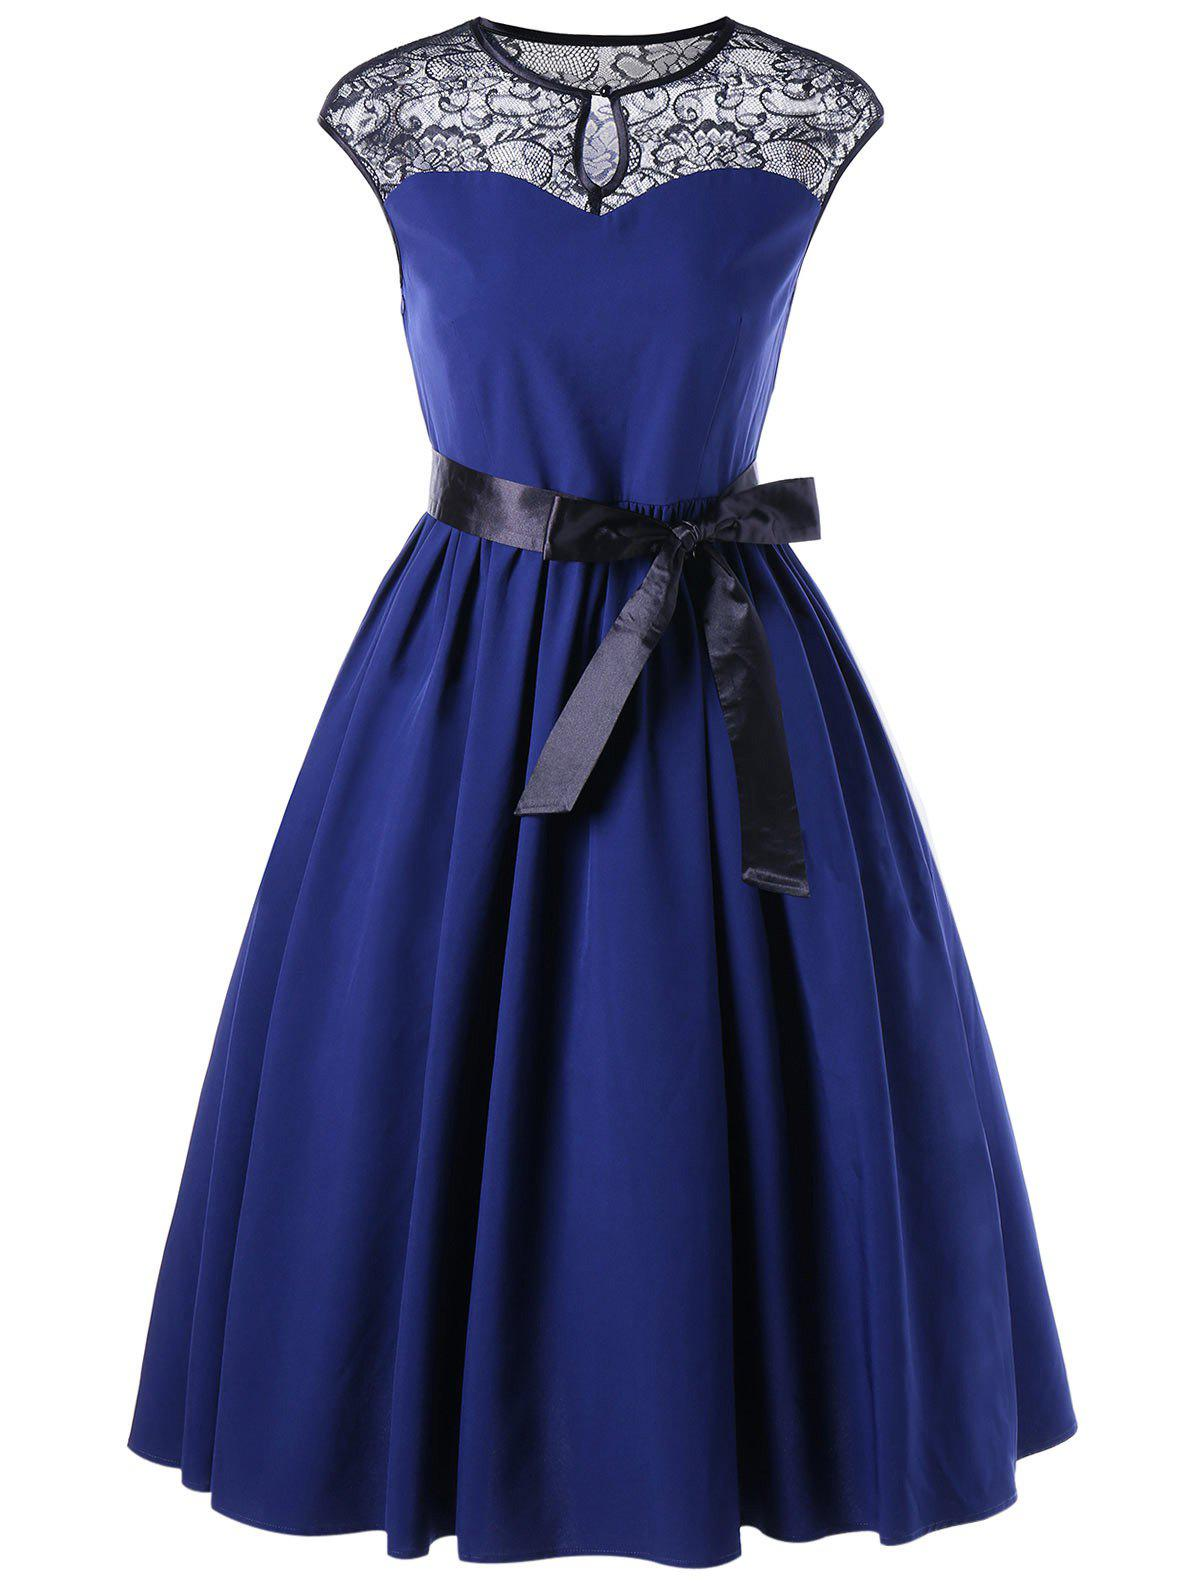 Lace Trim Keyhole Cap Sleeve Vintage DressWOMEN<br><br>Size: XL; Color: BLUE; Style: Vintage; Material: Polyester; Silhouette: A-Line; Dresses Length: Knee-Length; Neckline: Keyhole Neck; Sleeve Length: Short Sleeves; Pattern Type: Solid; With Belt: Yes; Season: Spring,Summer; Weight: 0.3390kg; Package Contents: 1 x Dress  1 x Belt;